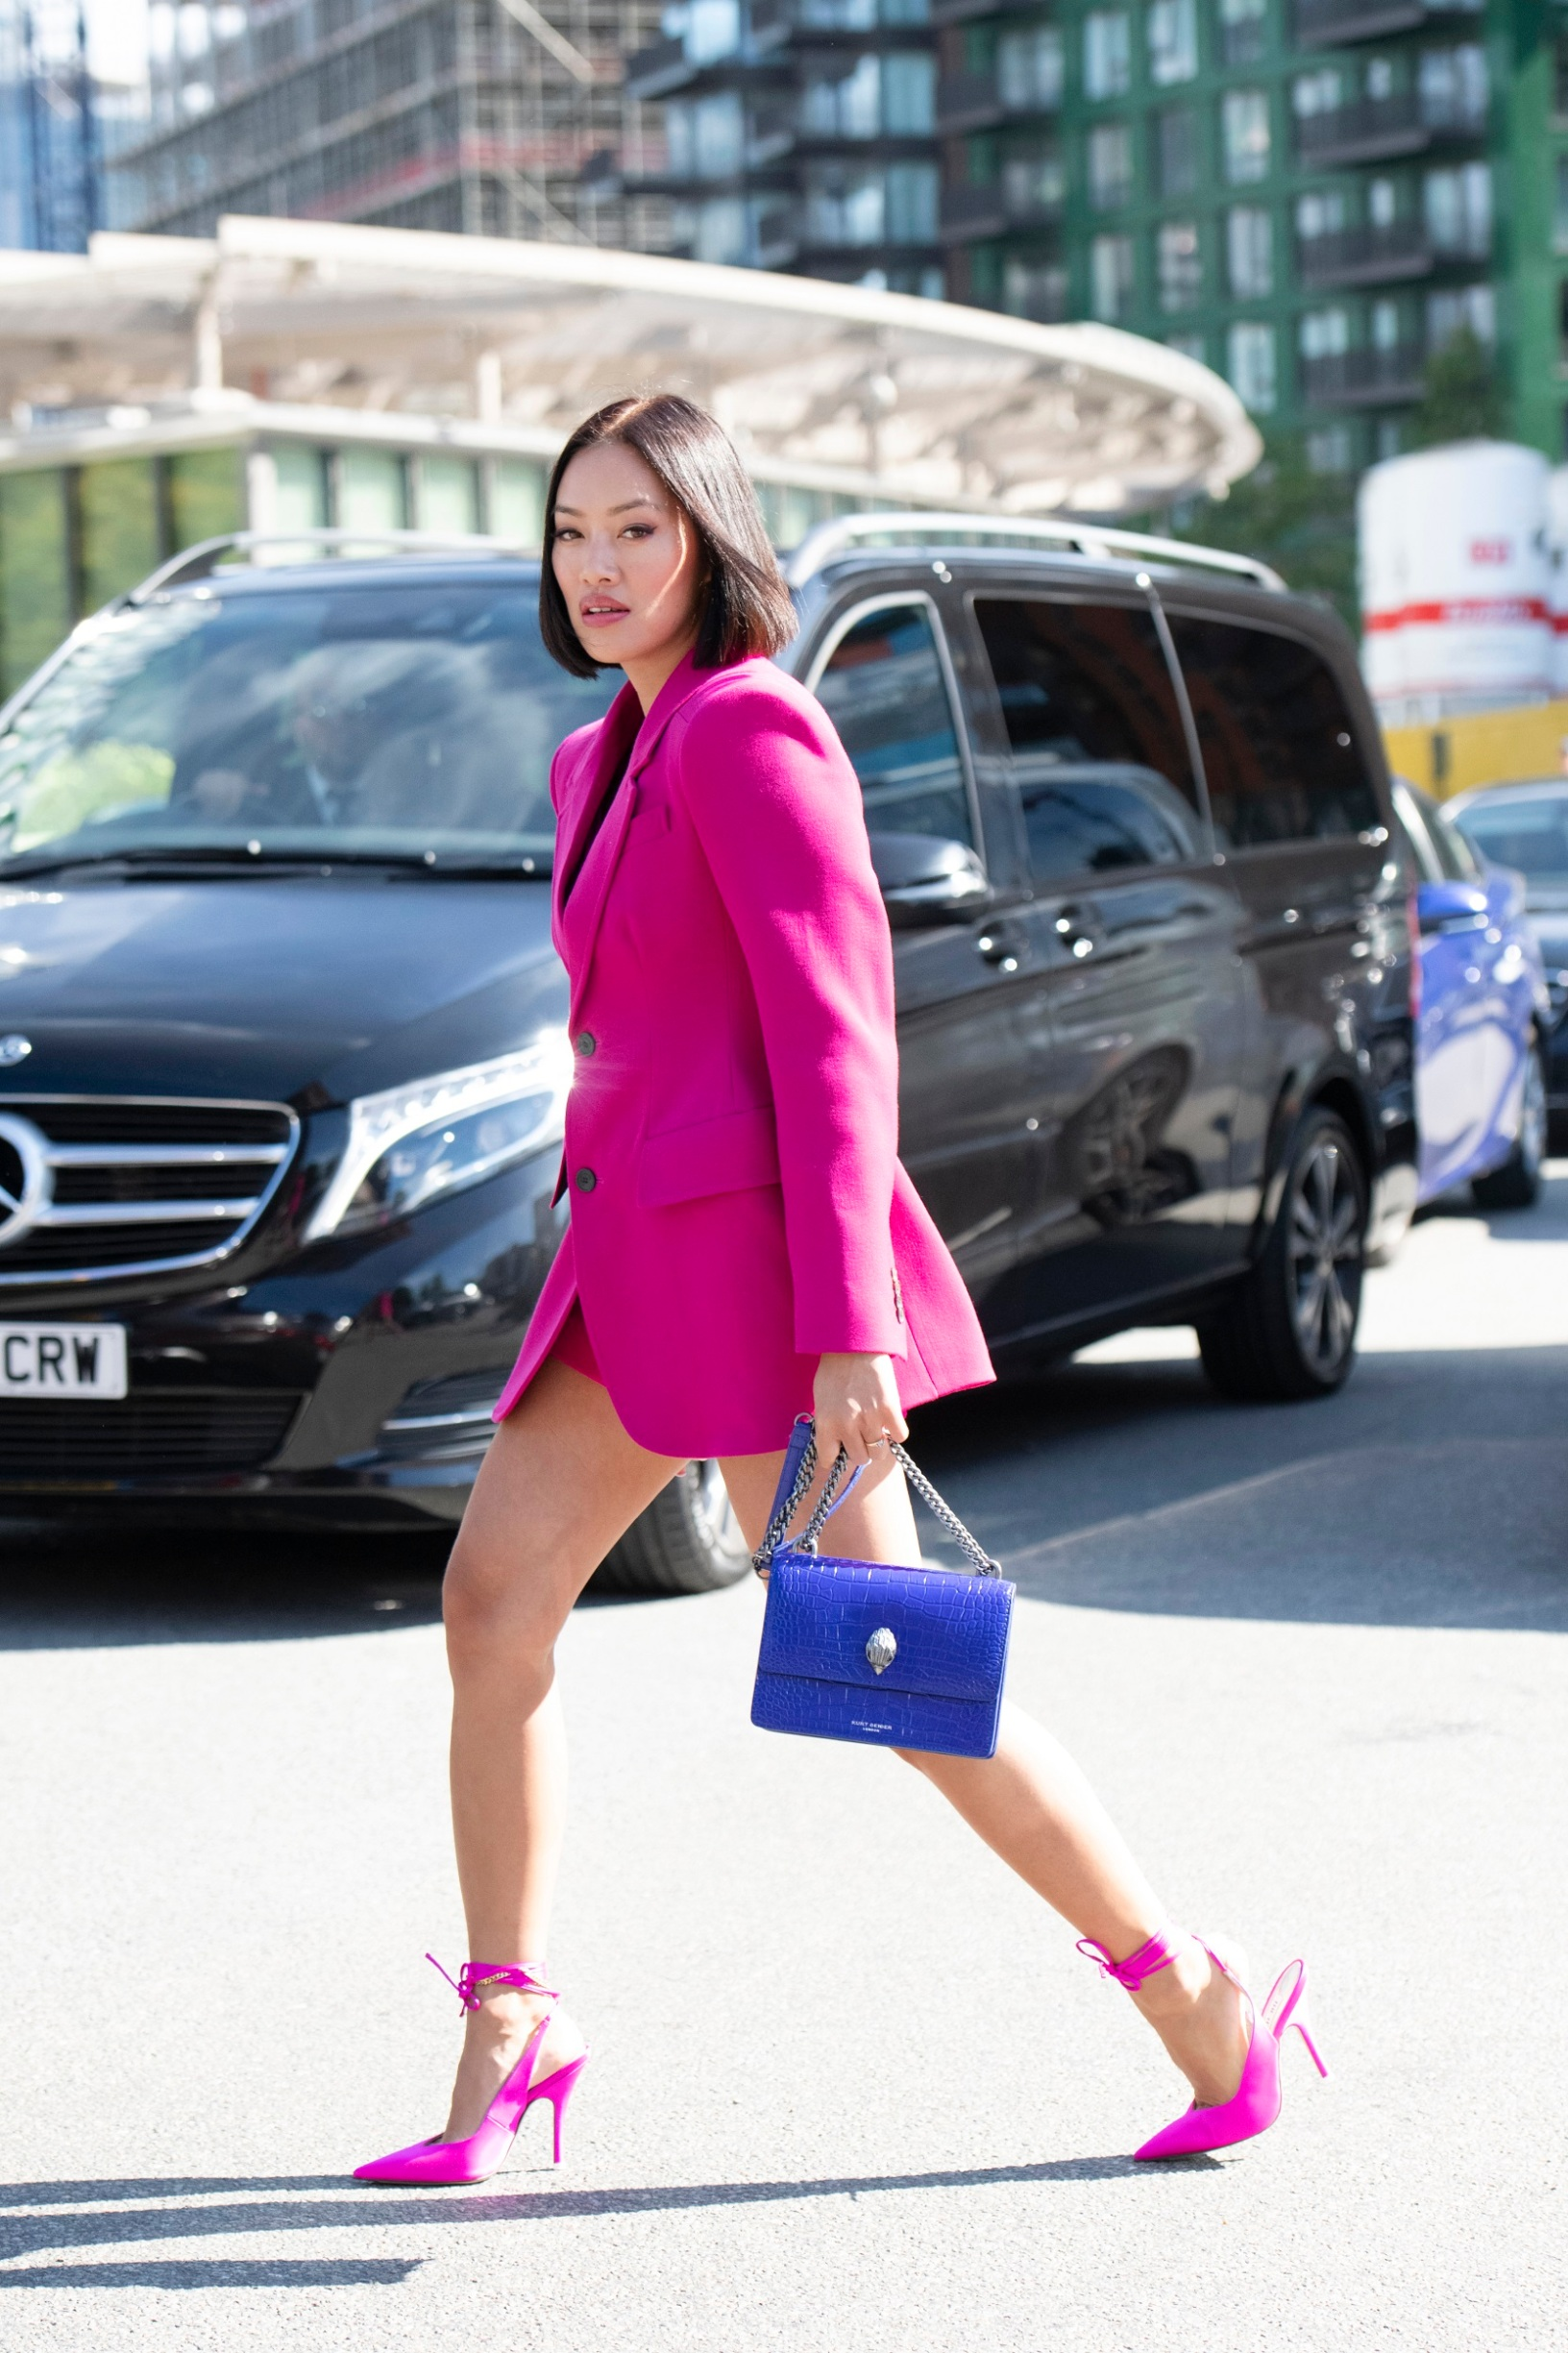 LONDON, ENGLAND - SEPTEMBER 15: Tiffany Hsu wears The Attico shoes and skirt, Balenciaga jacket and a Kurt Geiger bag on September 15, 2019 in London, England. (Photo by Kirstin Sinclair/Getty Images for Kurt Geiger)